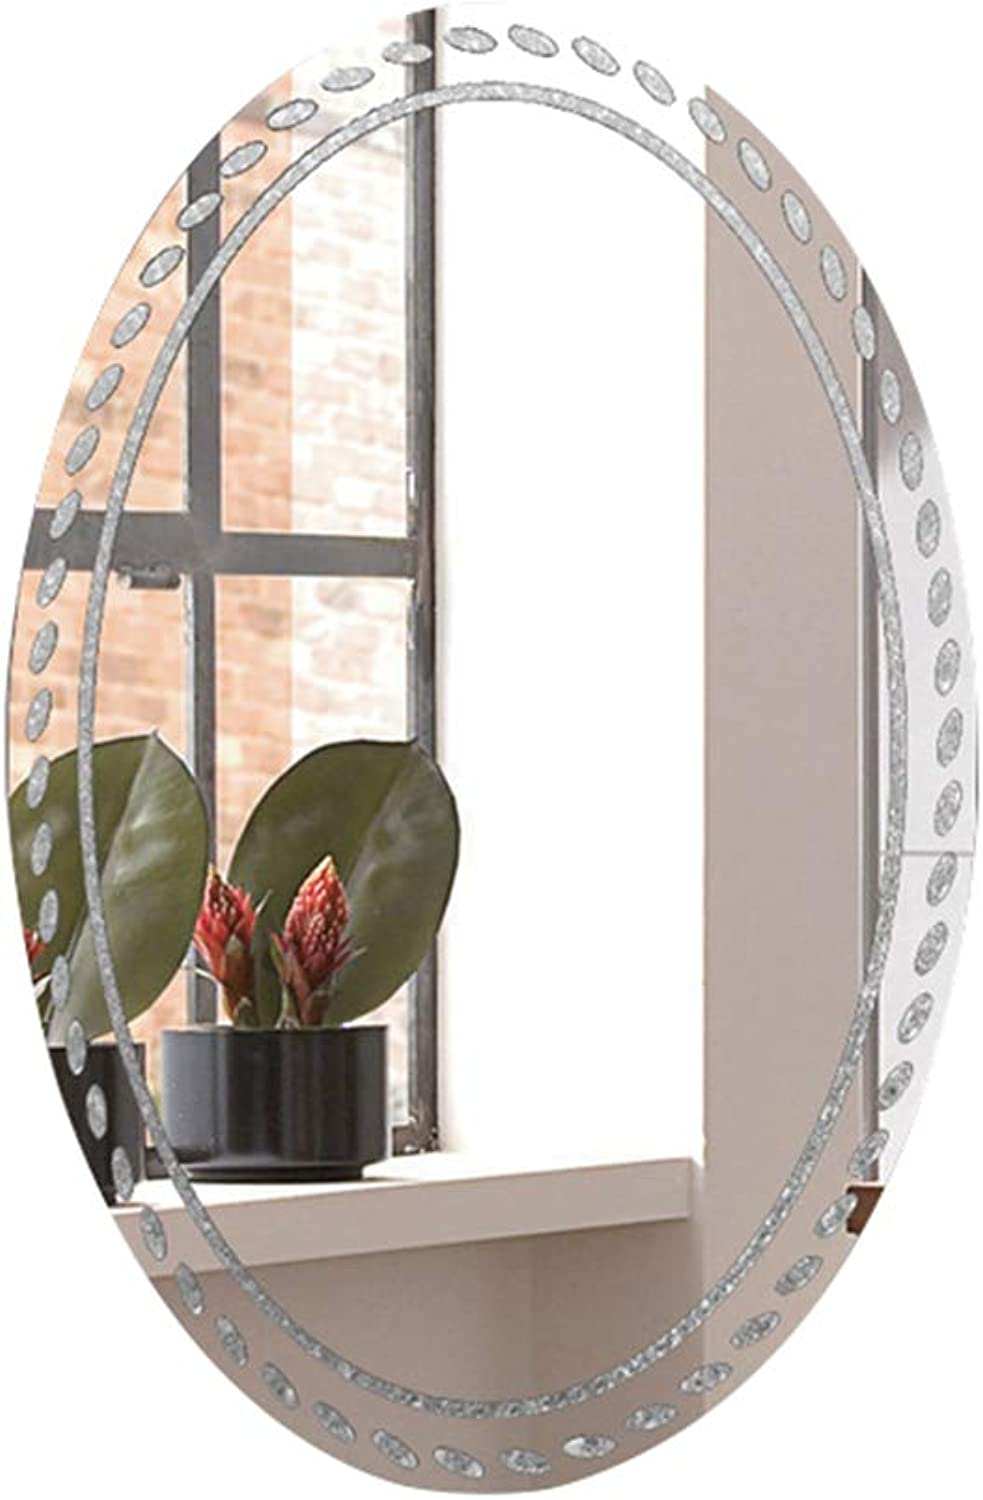 Oval Bathroom Mirror - Rounded Frameless Dressing HD Wall Mirror - 5 mm Thick Edge Engraving Process - 50  70 cm (19.6  27.5in)